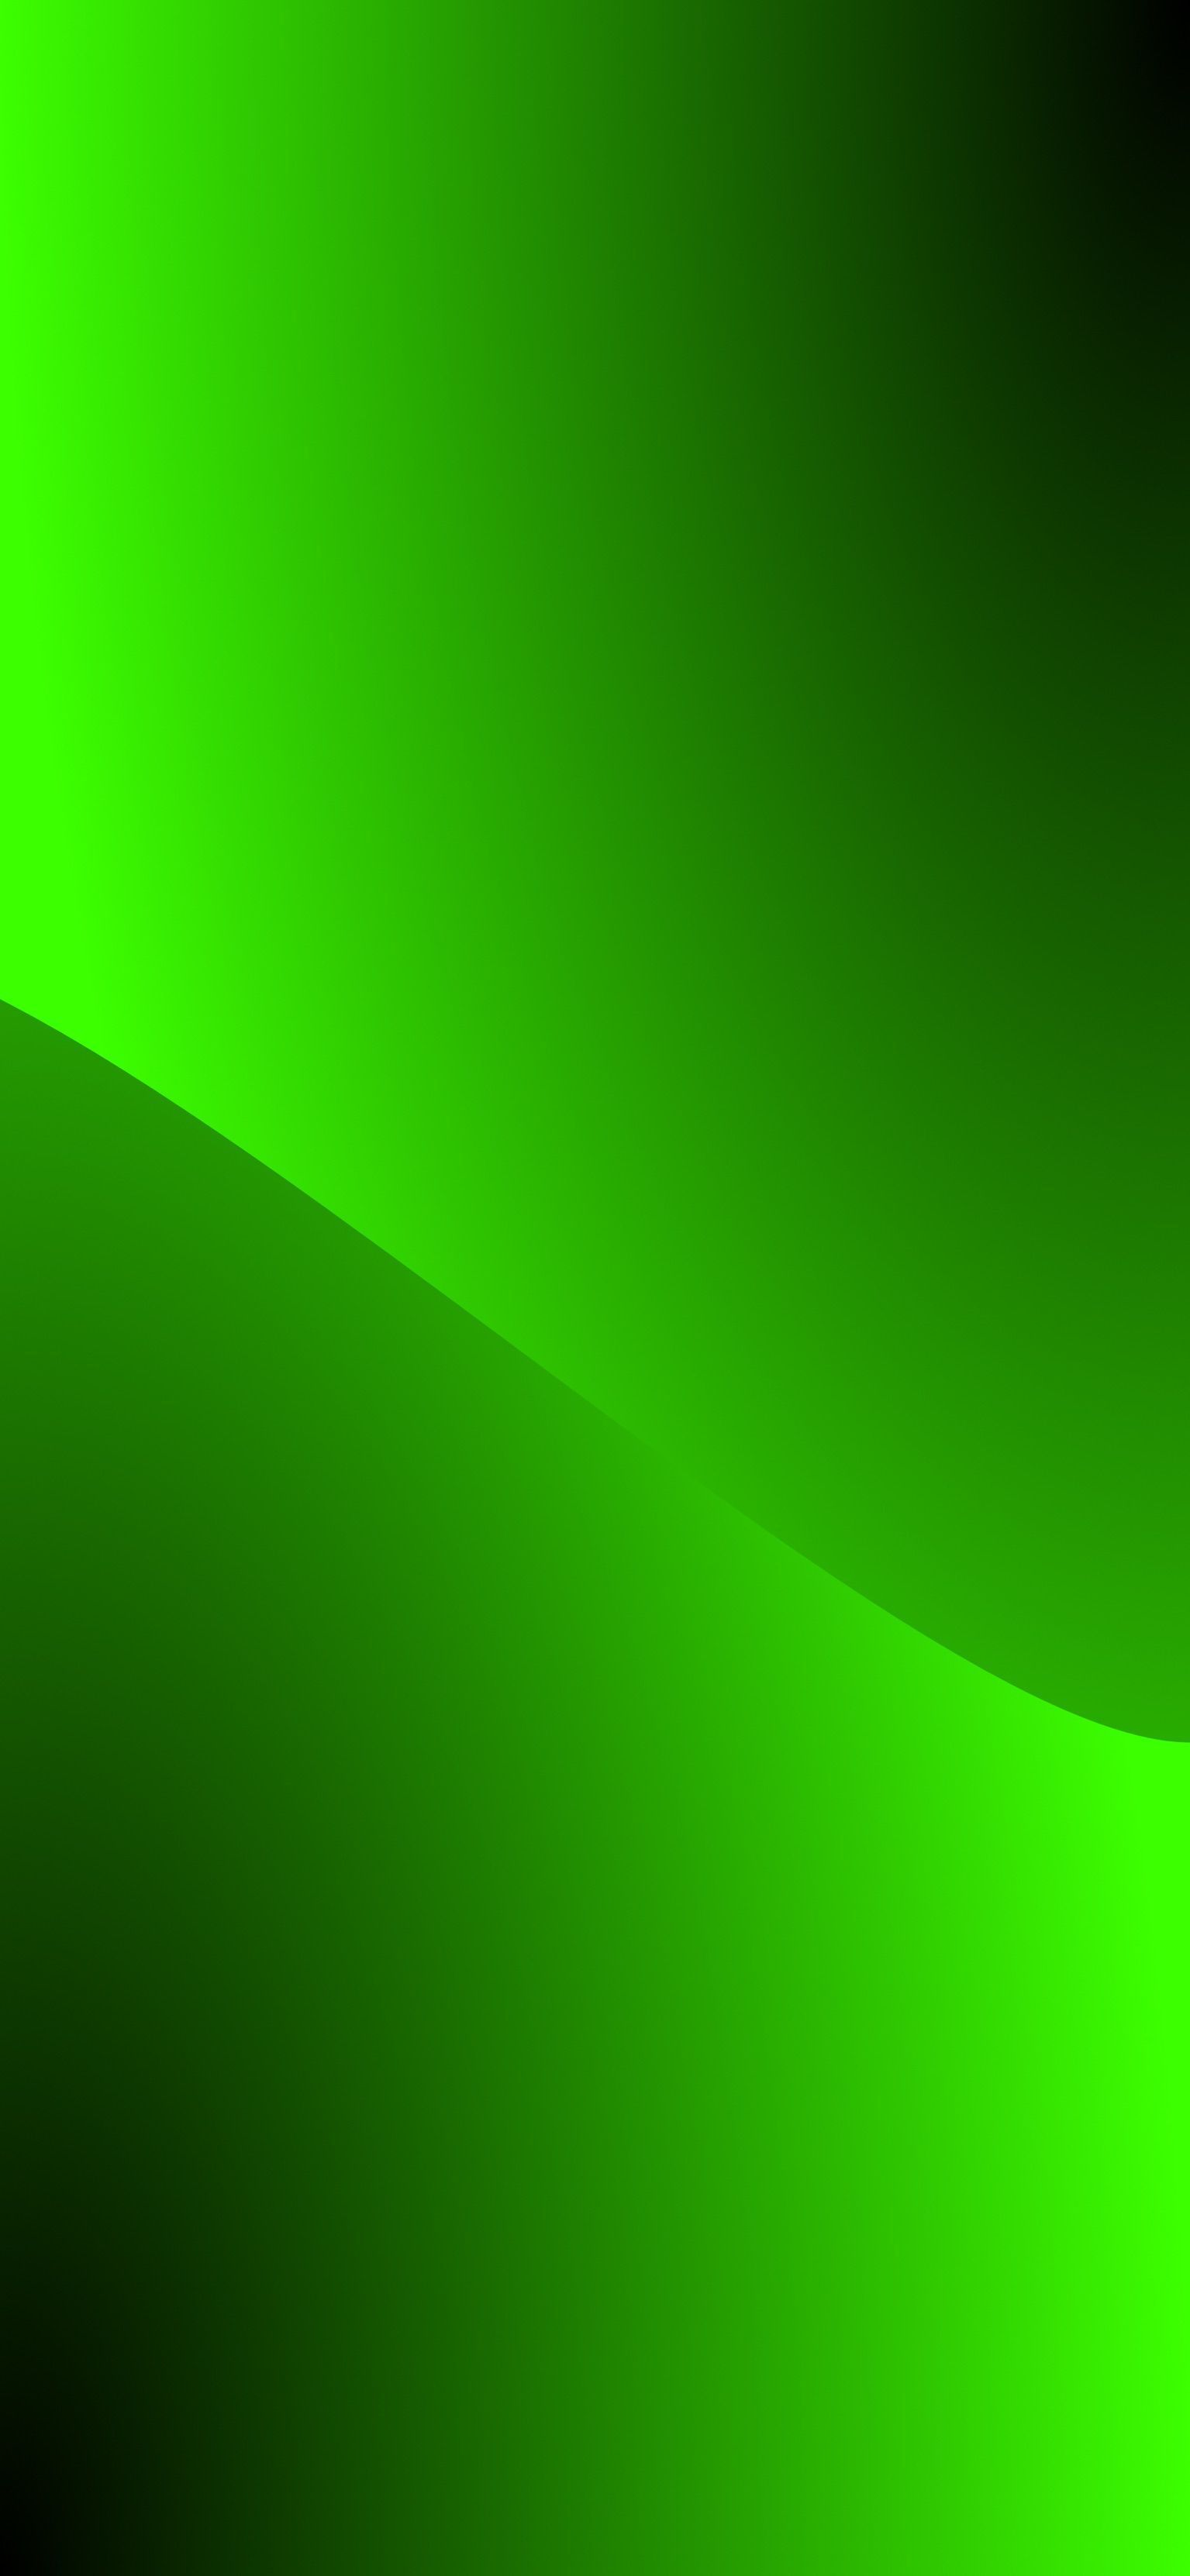 Iphone 11 Wallpaper Ios Green 4k Hd Download Free Hd Wallpaper Screensavers Dw Gaming Com Android Wallpaper Graphic Wallpaper Cool Wallpapers For Phones